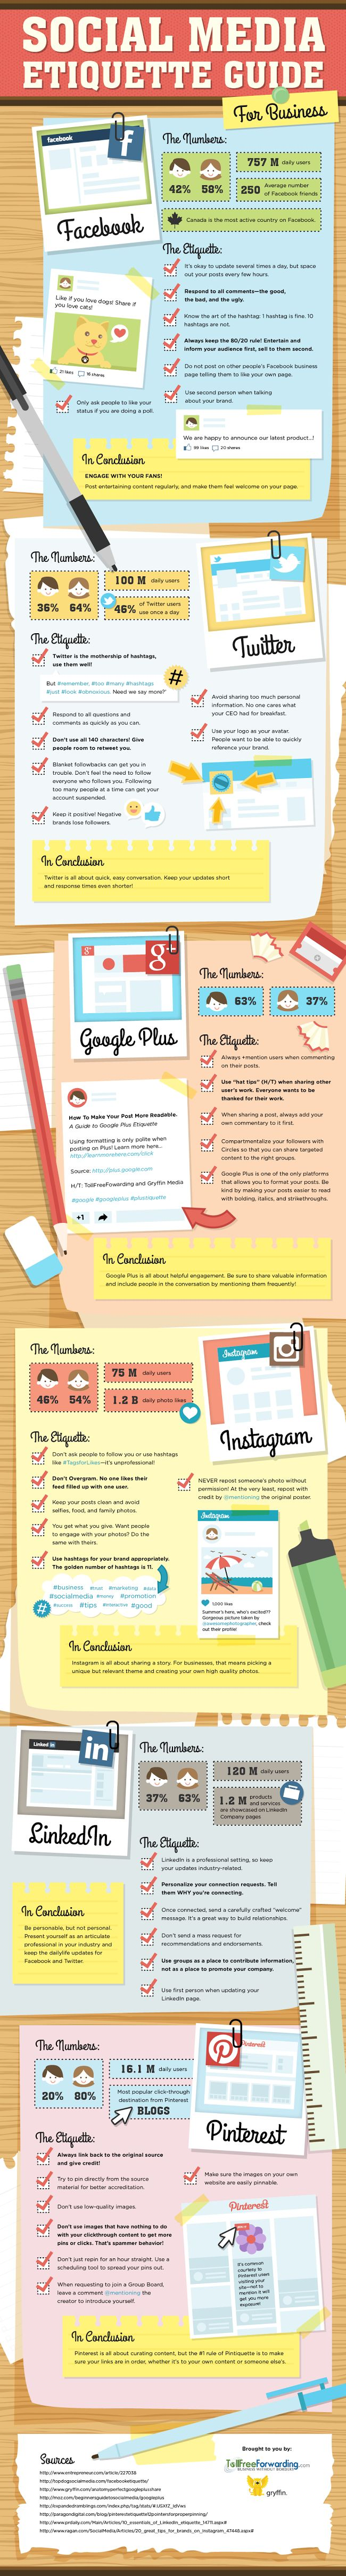 Infographic: Social Media Etiquette For #Business http://www.strengthinbusiness.com/social-media-etiquette-business/  What were your experiences with social media etiquette so far? #socialmedia #socialmediamarketingtips